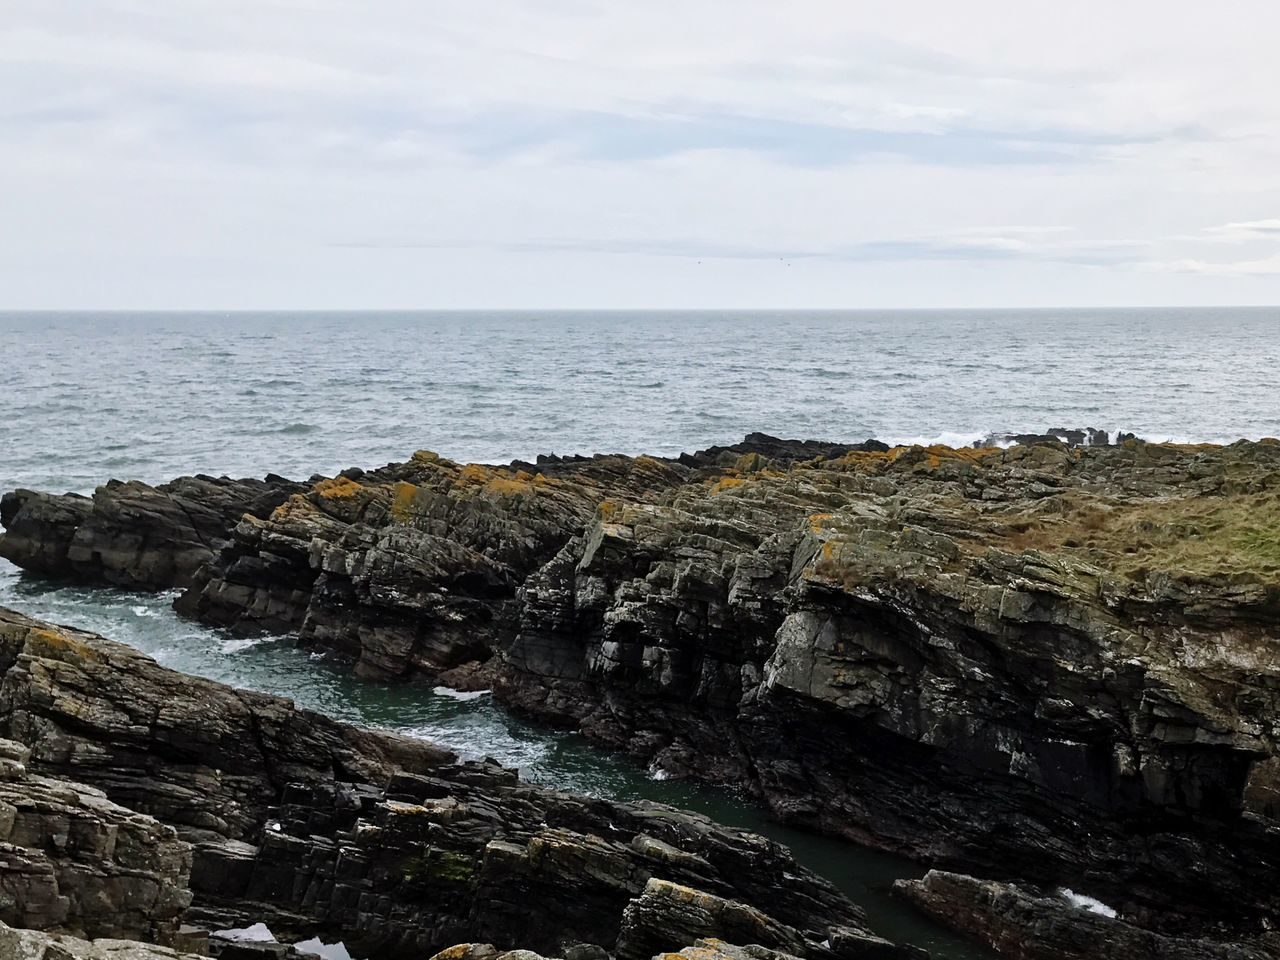 sea, horizon over water, sky, nature, beauty in nature, rock - object, scenics, rock formation, water, tranquility, no people, tranquil scene, cloud - sky, outdoors, day